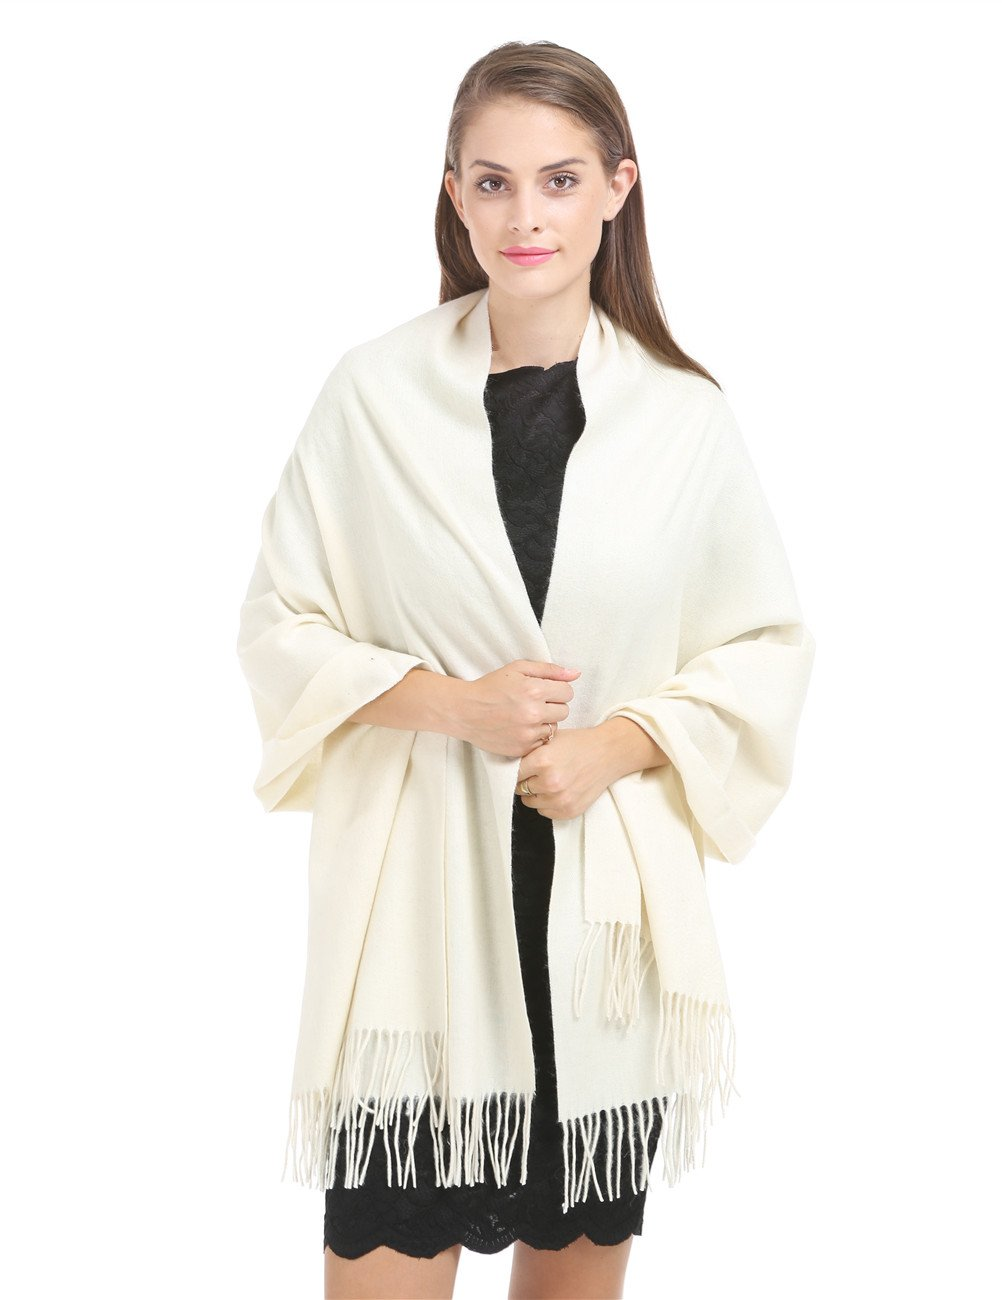 Cashmere Wraps Shawl Stole for Women Winter Warm and Soft Extra Large(79'' X 28'') Men Luxurious Solid Lambswool Pashmina Scarf with Gift Box ZZZ-Ivory by SAFERIN